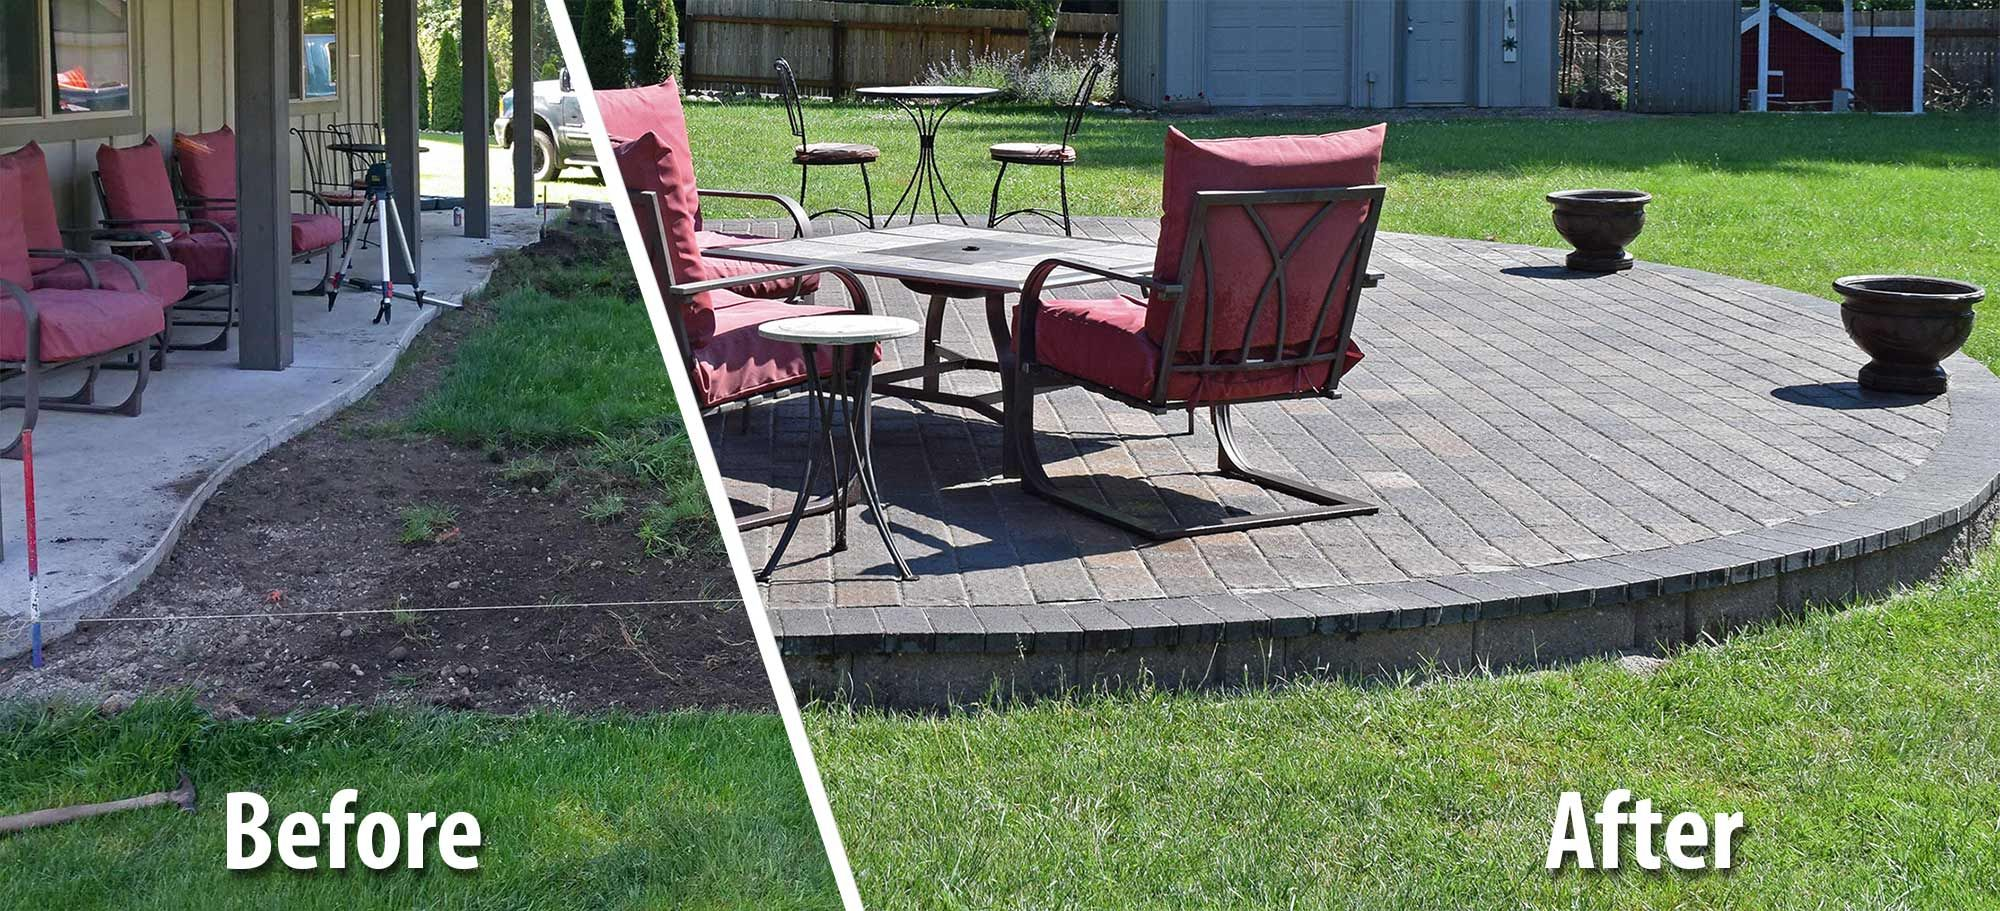 Marvelous Before And After Comparison Showing The Much Improved Raised Backyard Paver  Patio.